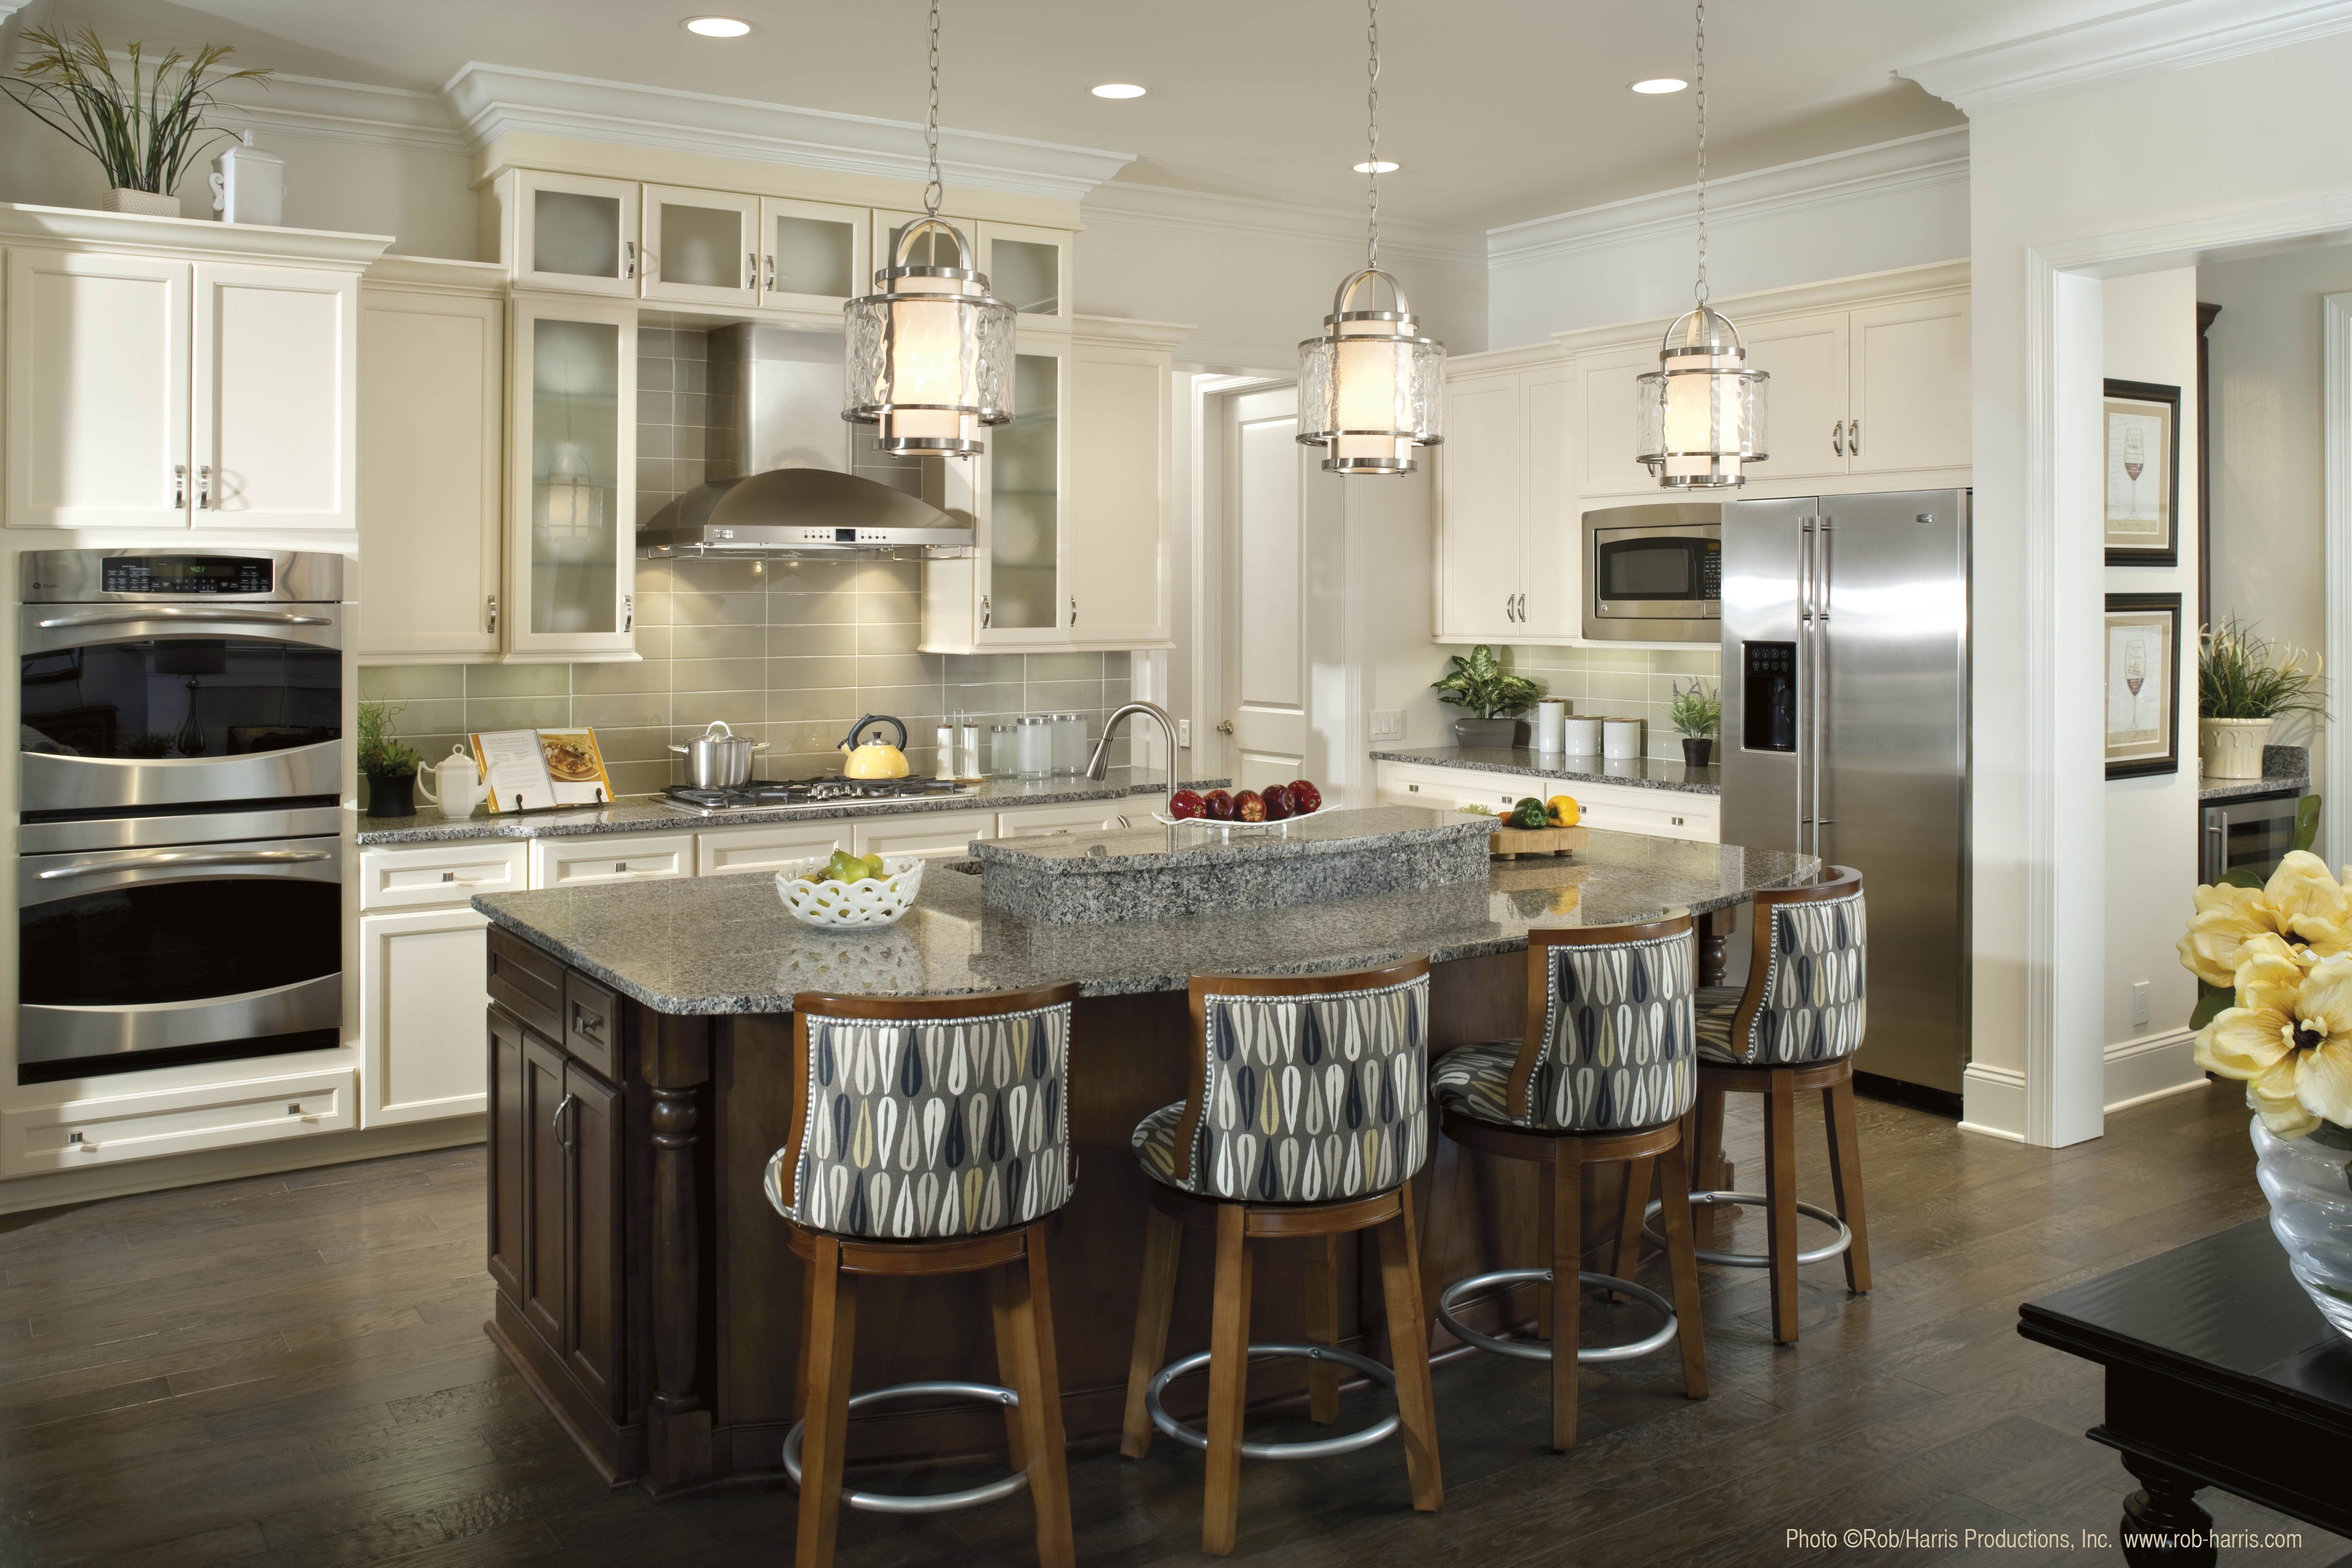 Permalink to Inspirational Kitchen island Pendant Lights